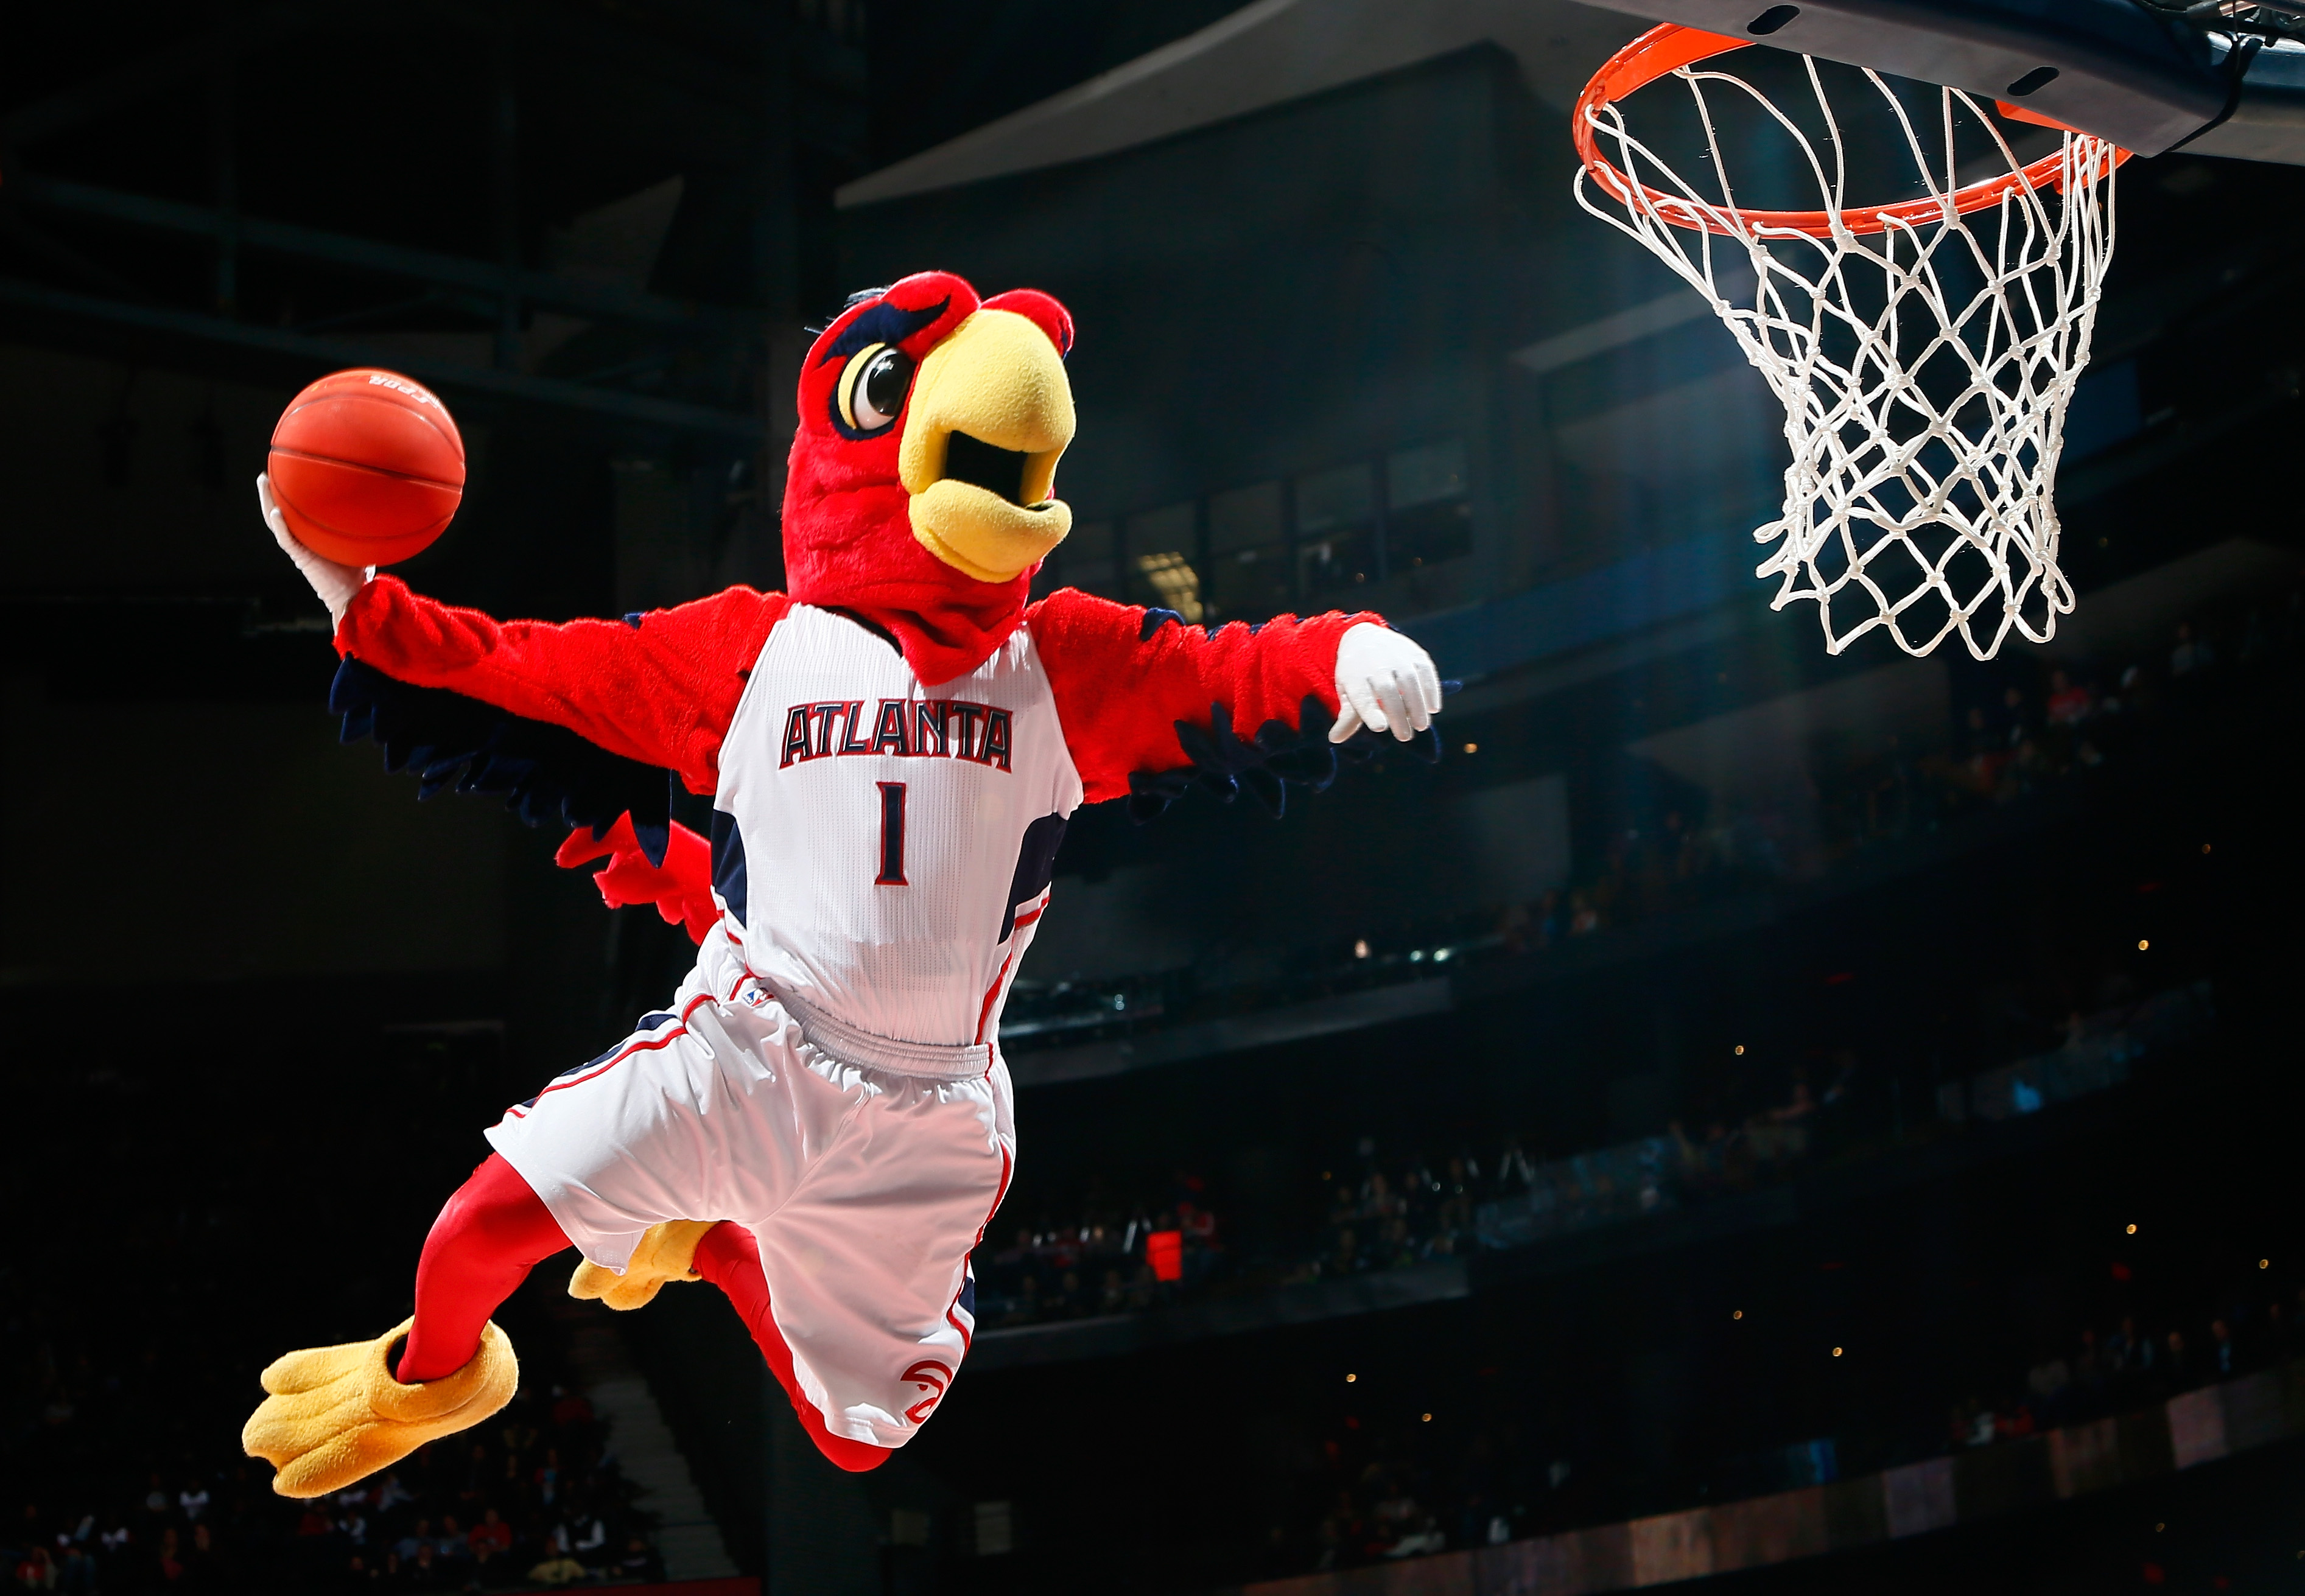 The mascot for the Atlanta Hawks goes up for a durnk